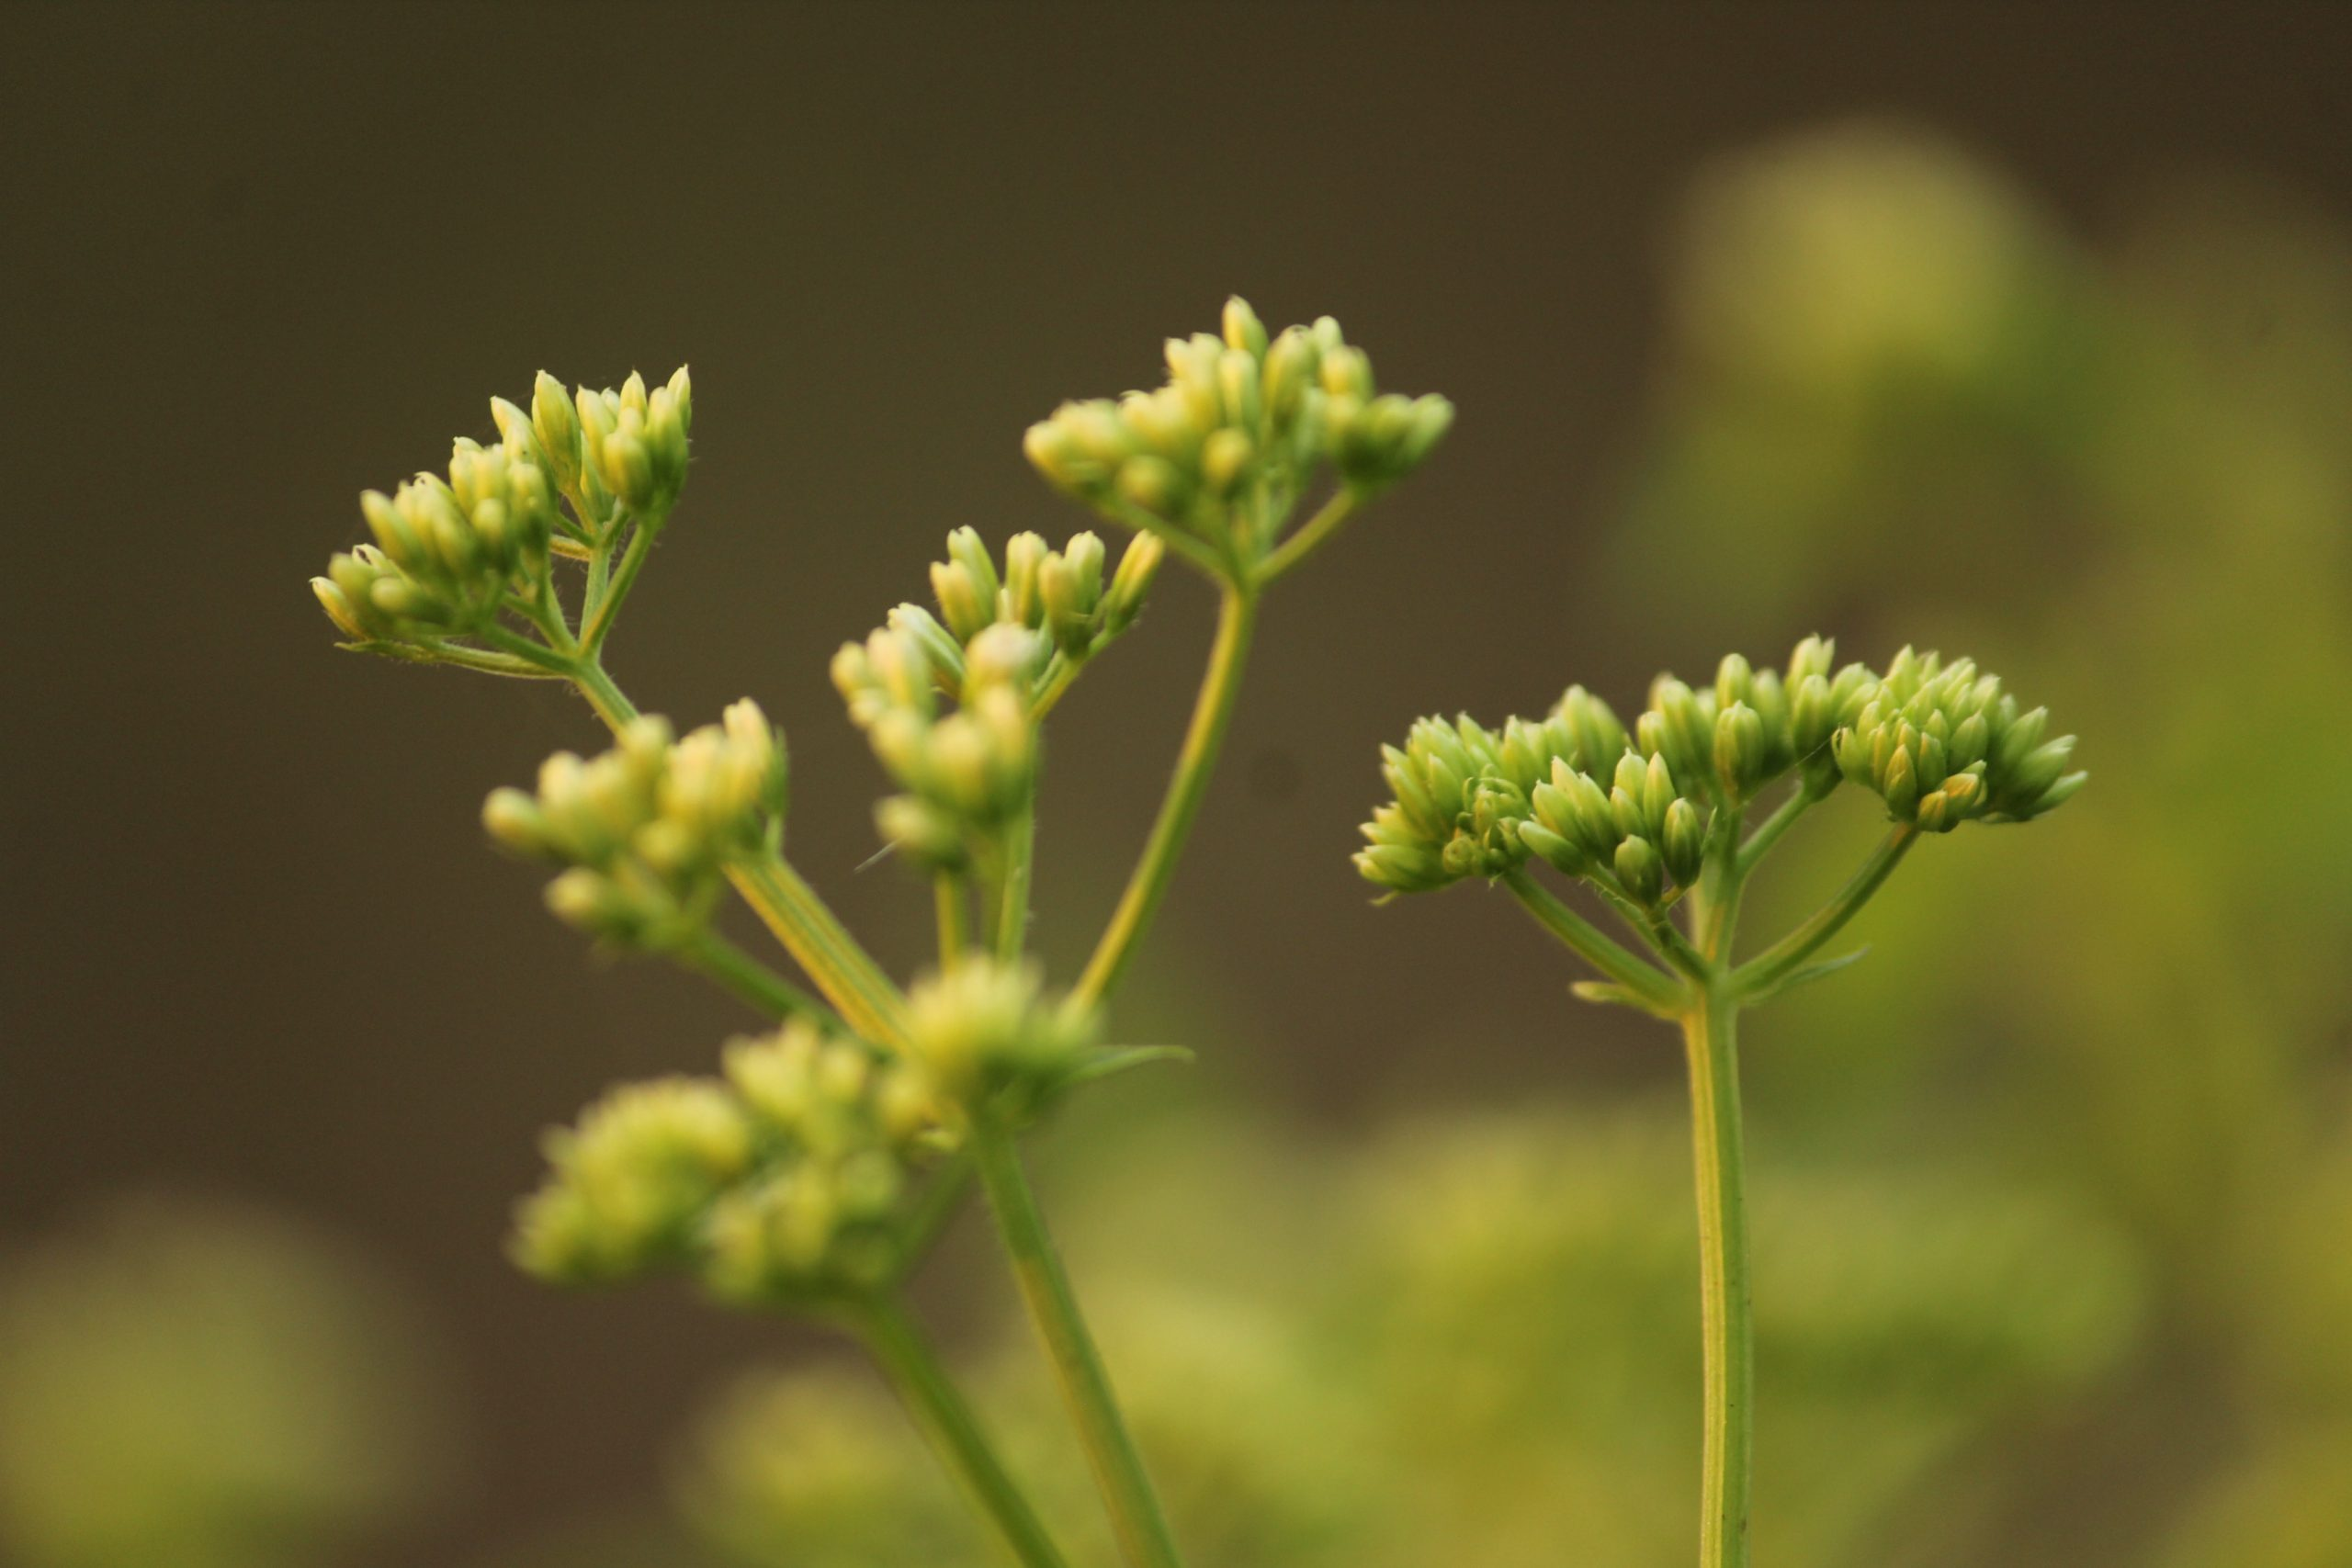 Buds of a flowering plant